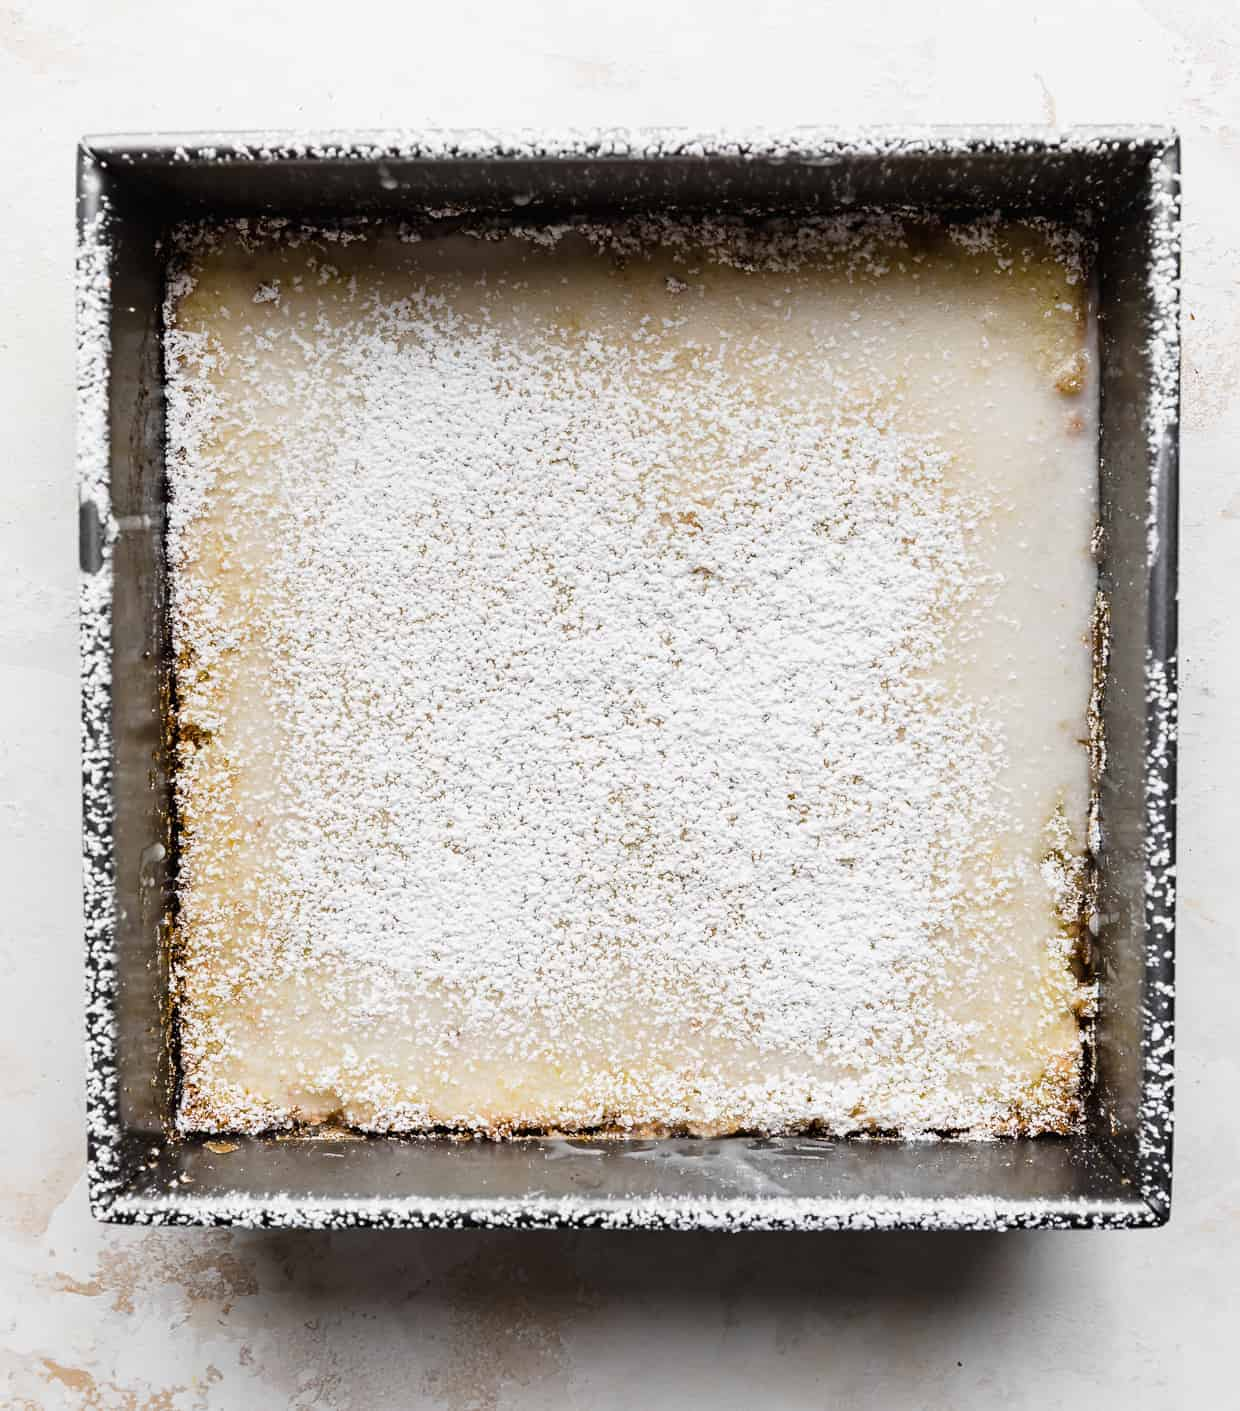 A square pan of lemon bars topped with a sprinkling of powdered sugar.